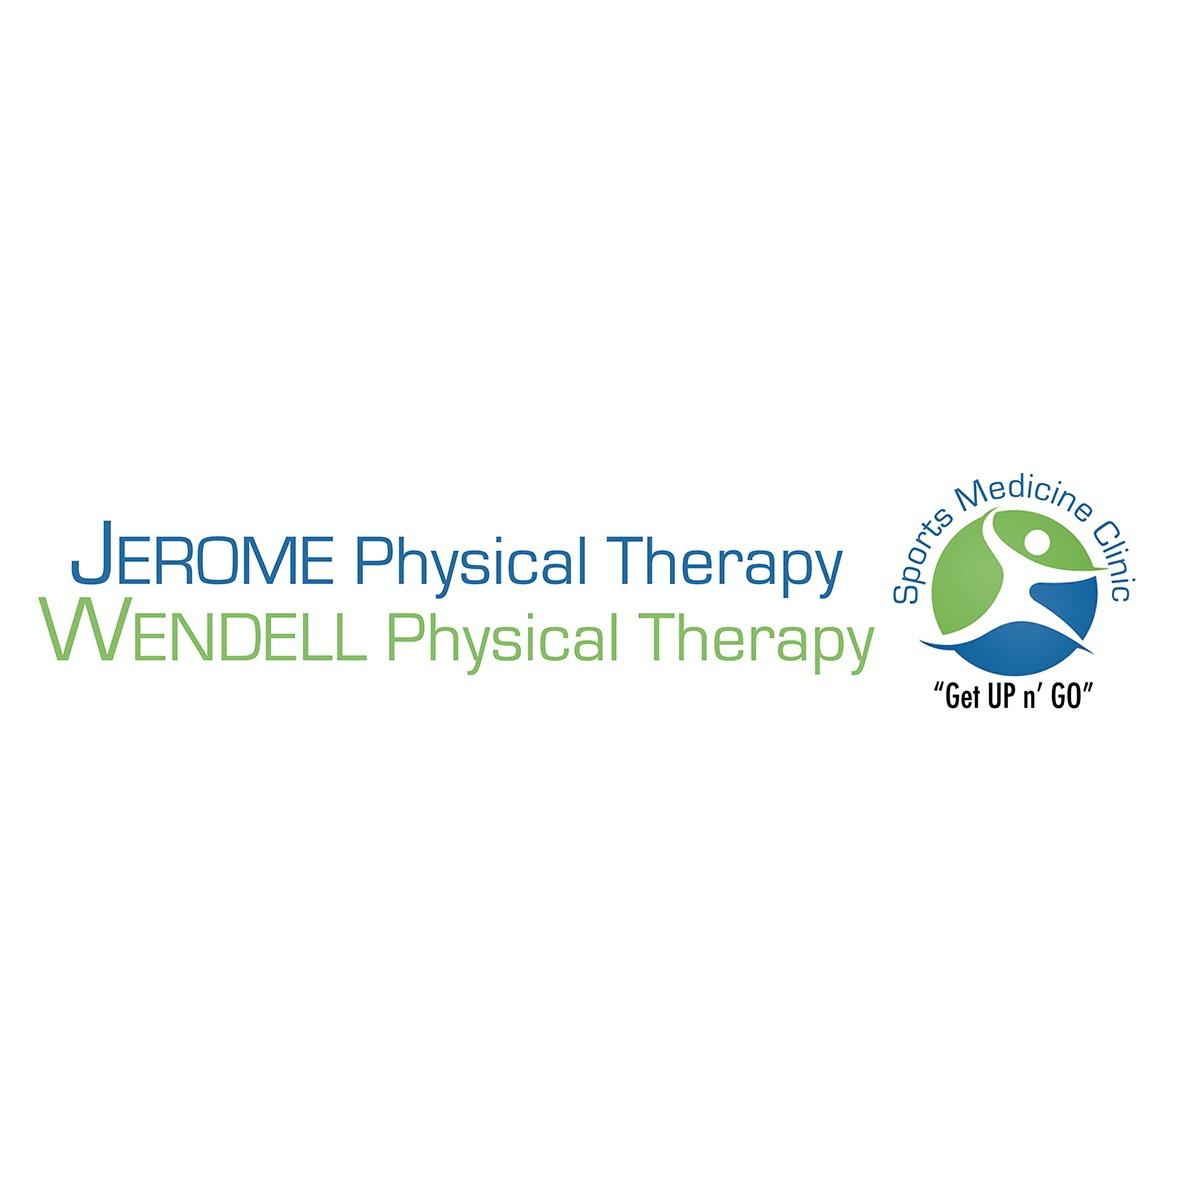 Jerome/Wendell Physical Therapy